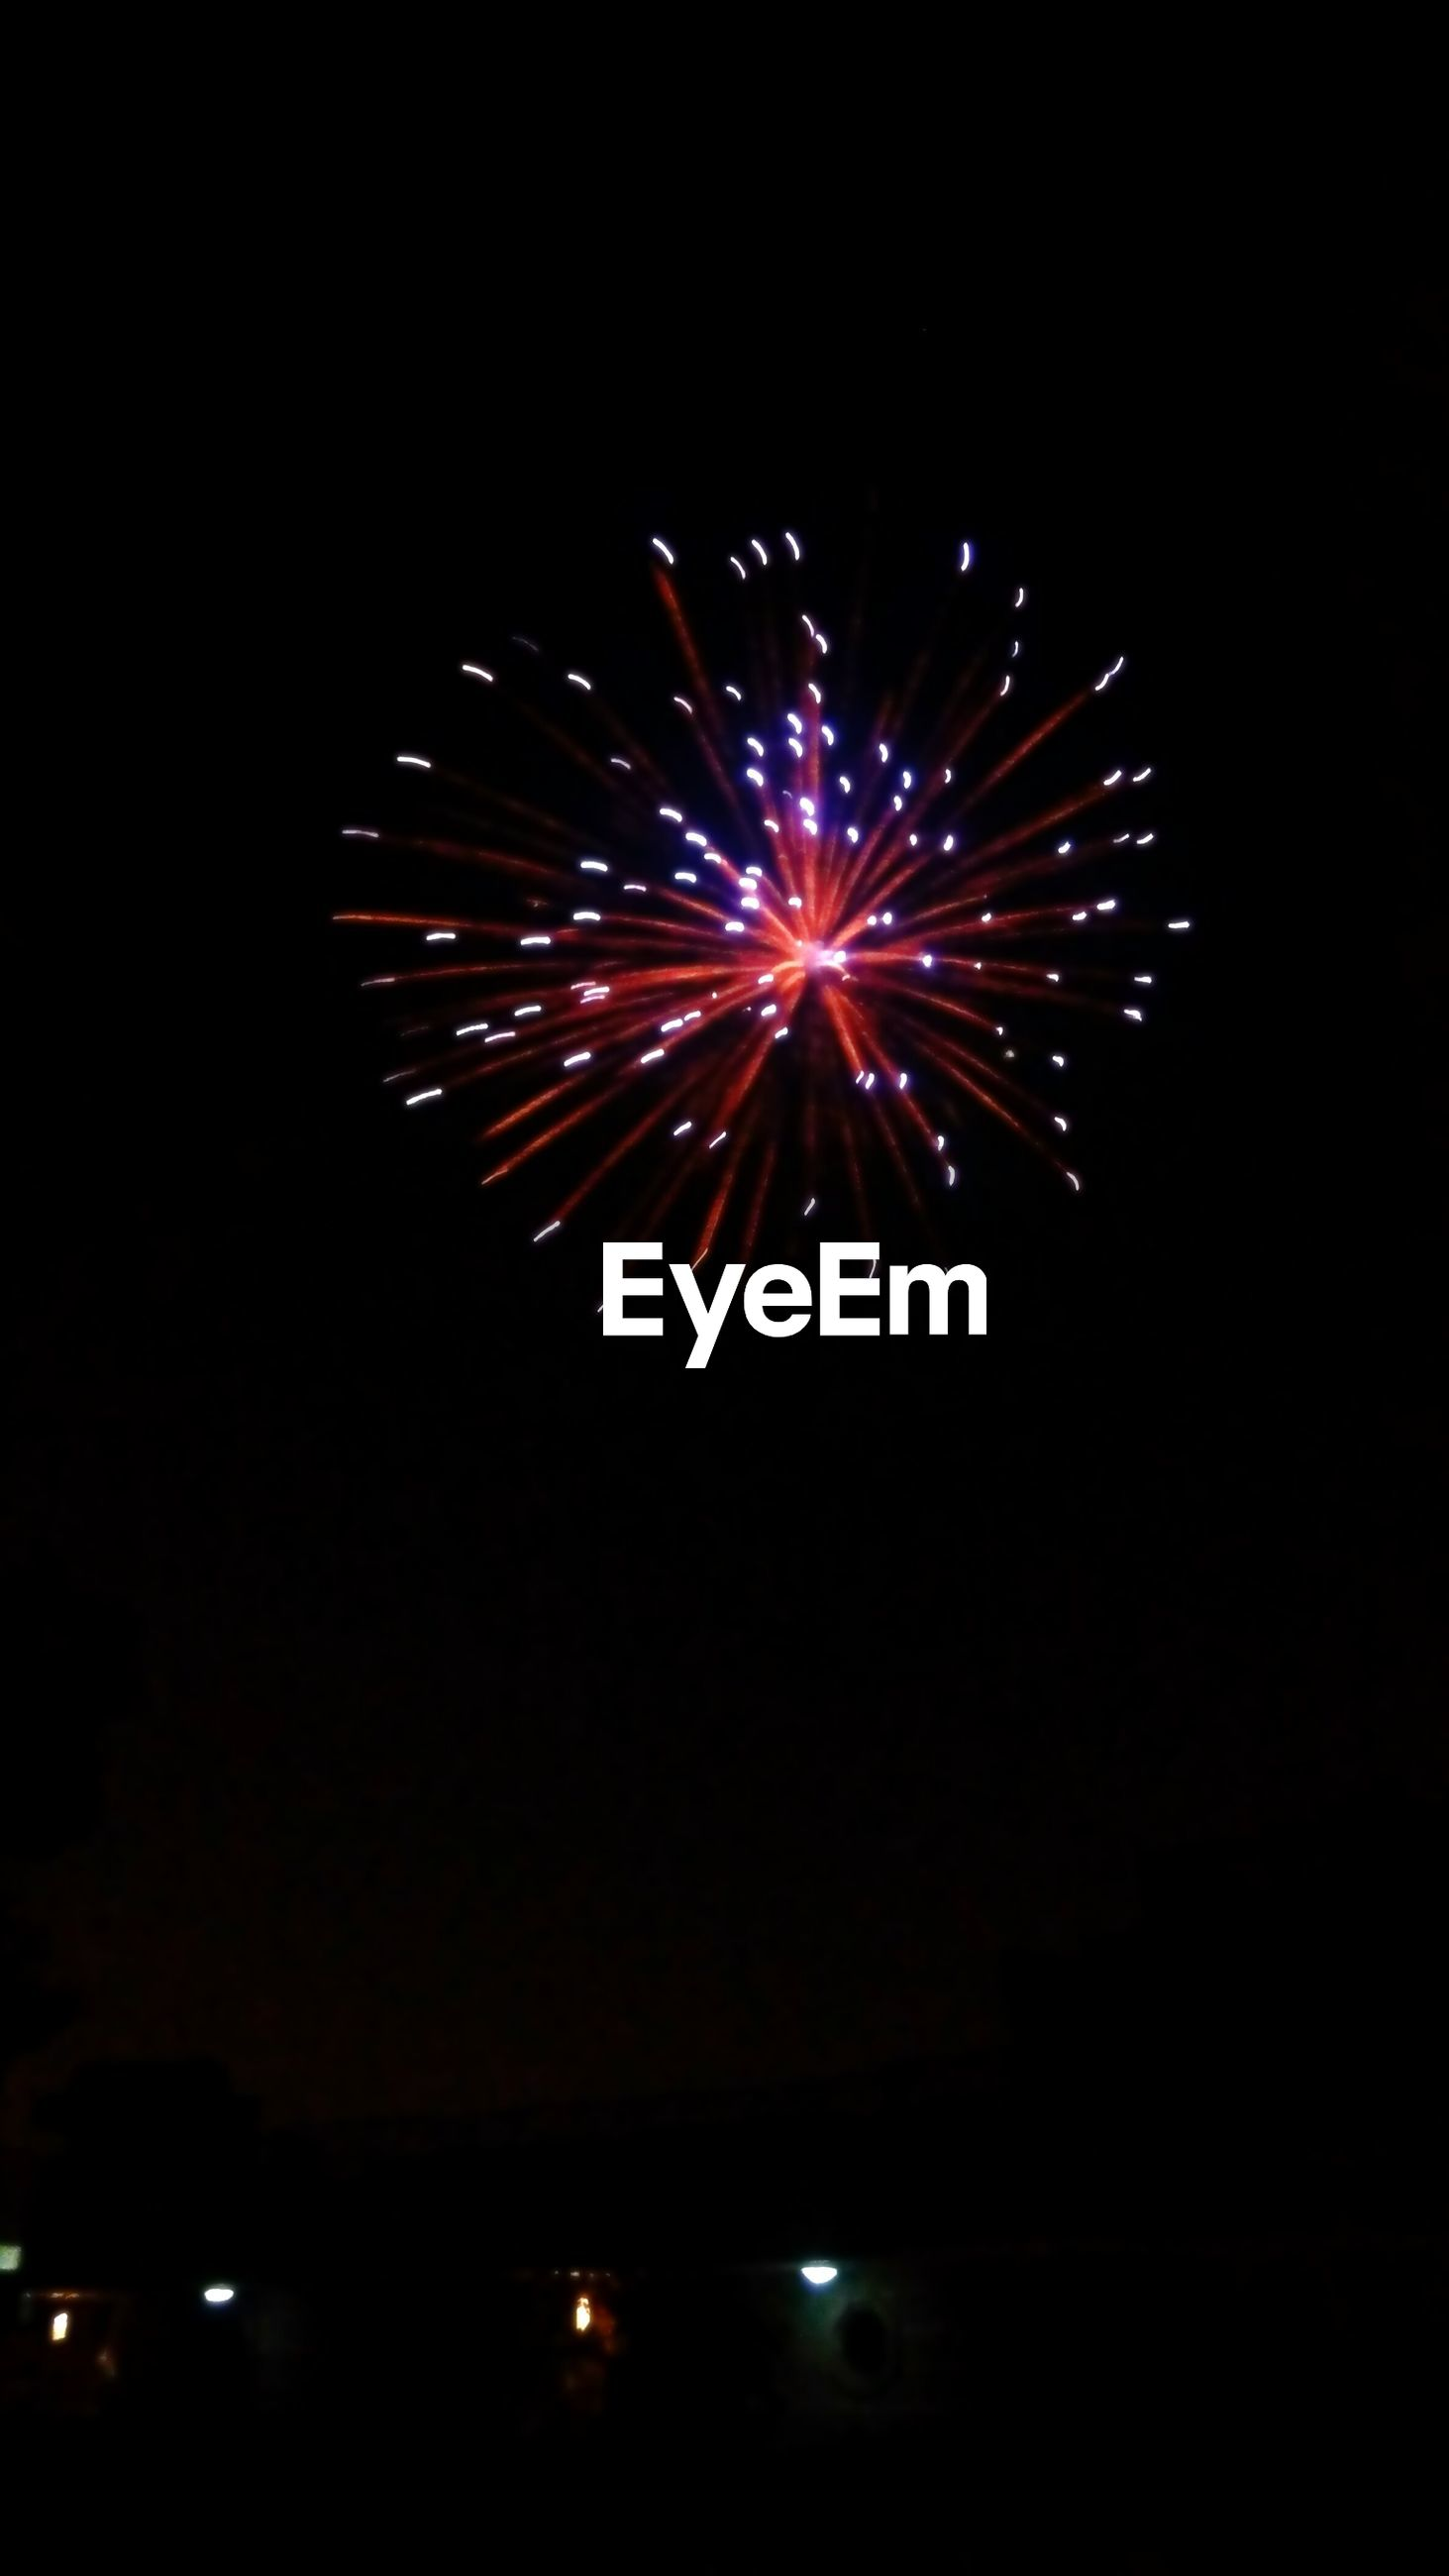 night, illuminated, firework display, celebration, exploding, glowing, long exposure, firework - man made object, motion, low angle view, event, firework, arts culture and entertainment, sparks, dark, sky, copy space, blurred motion, entertainment, celebration event